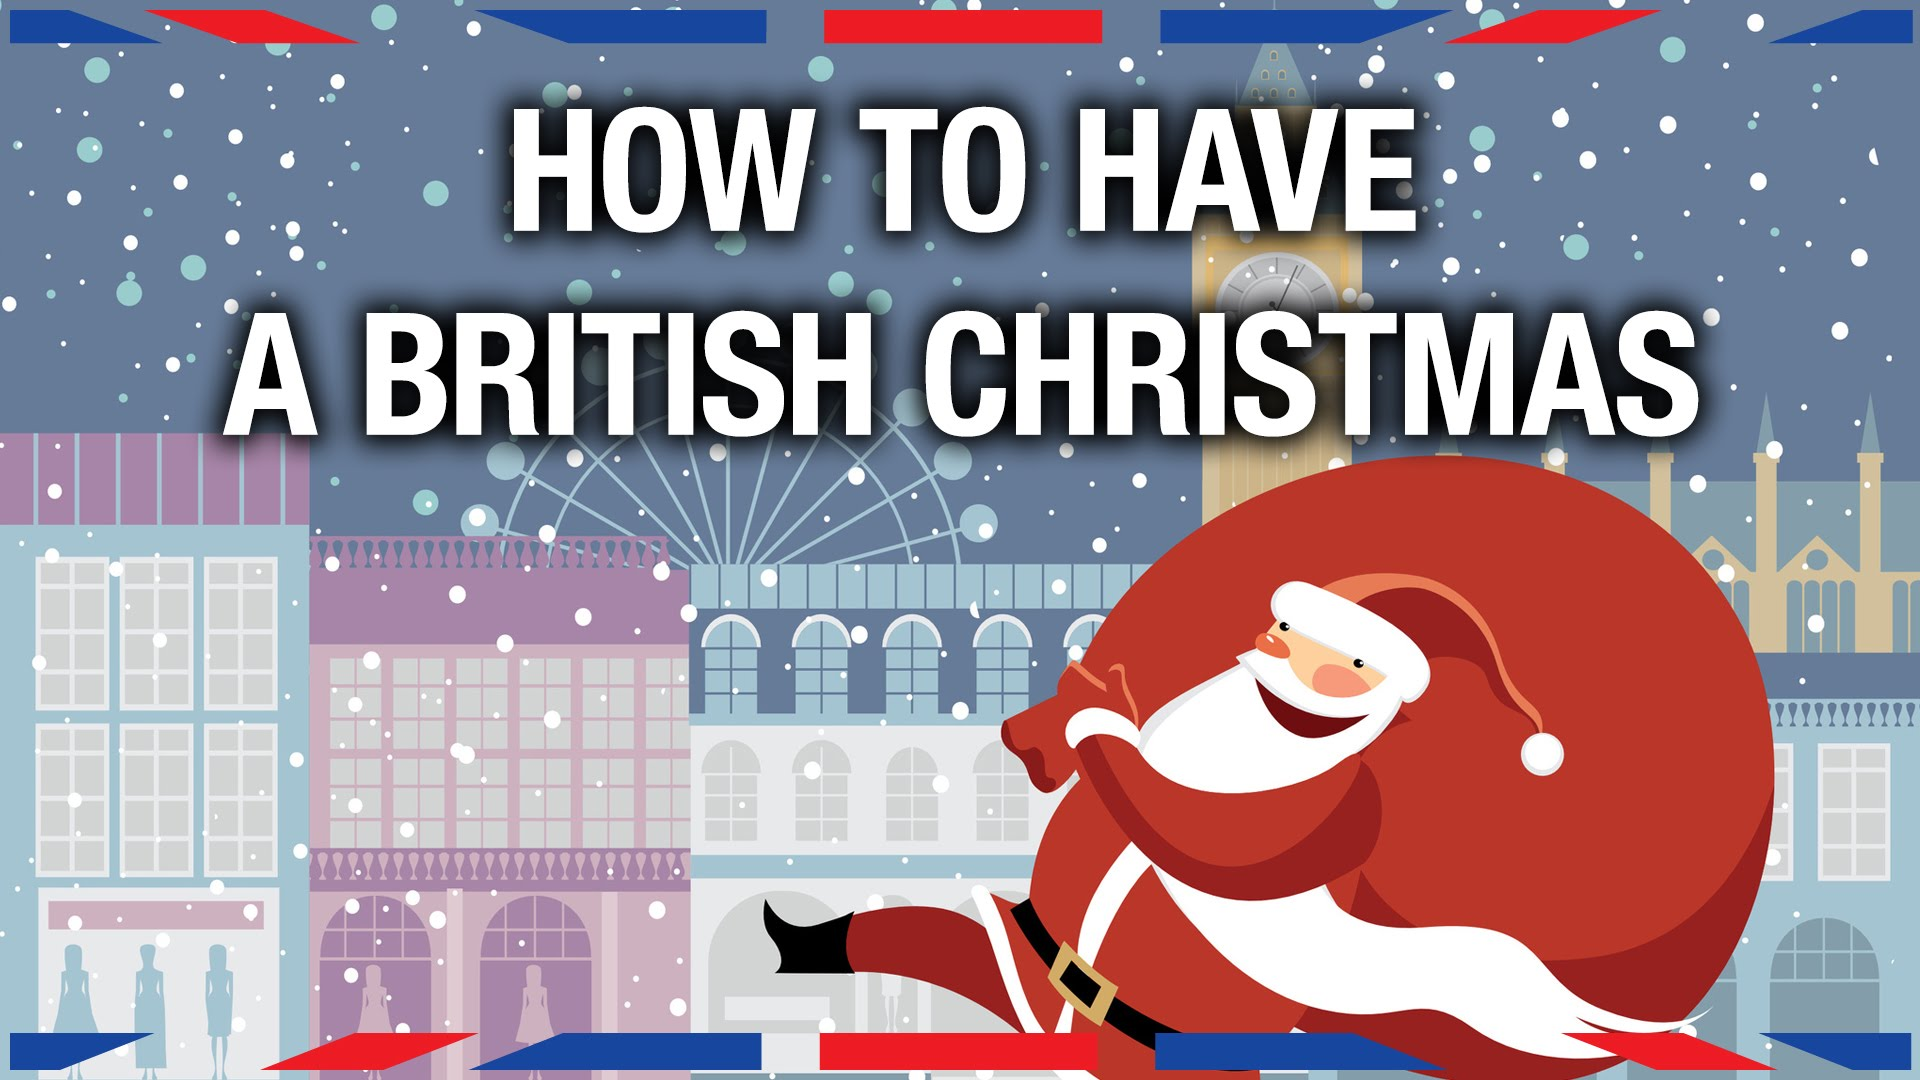 Siobhan Thompson of Anglophenia Explains How a Proper British Christmas is Celebrated